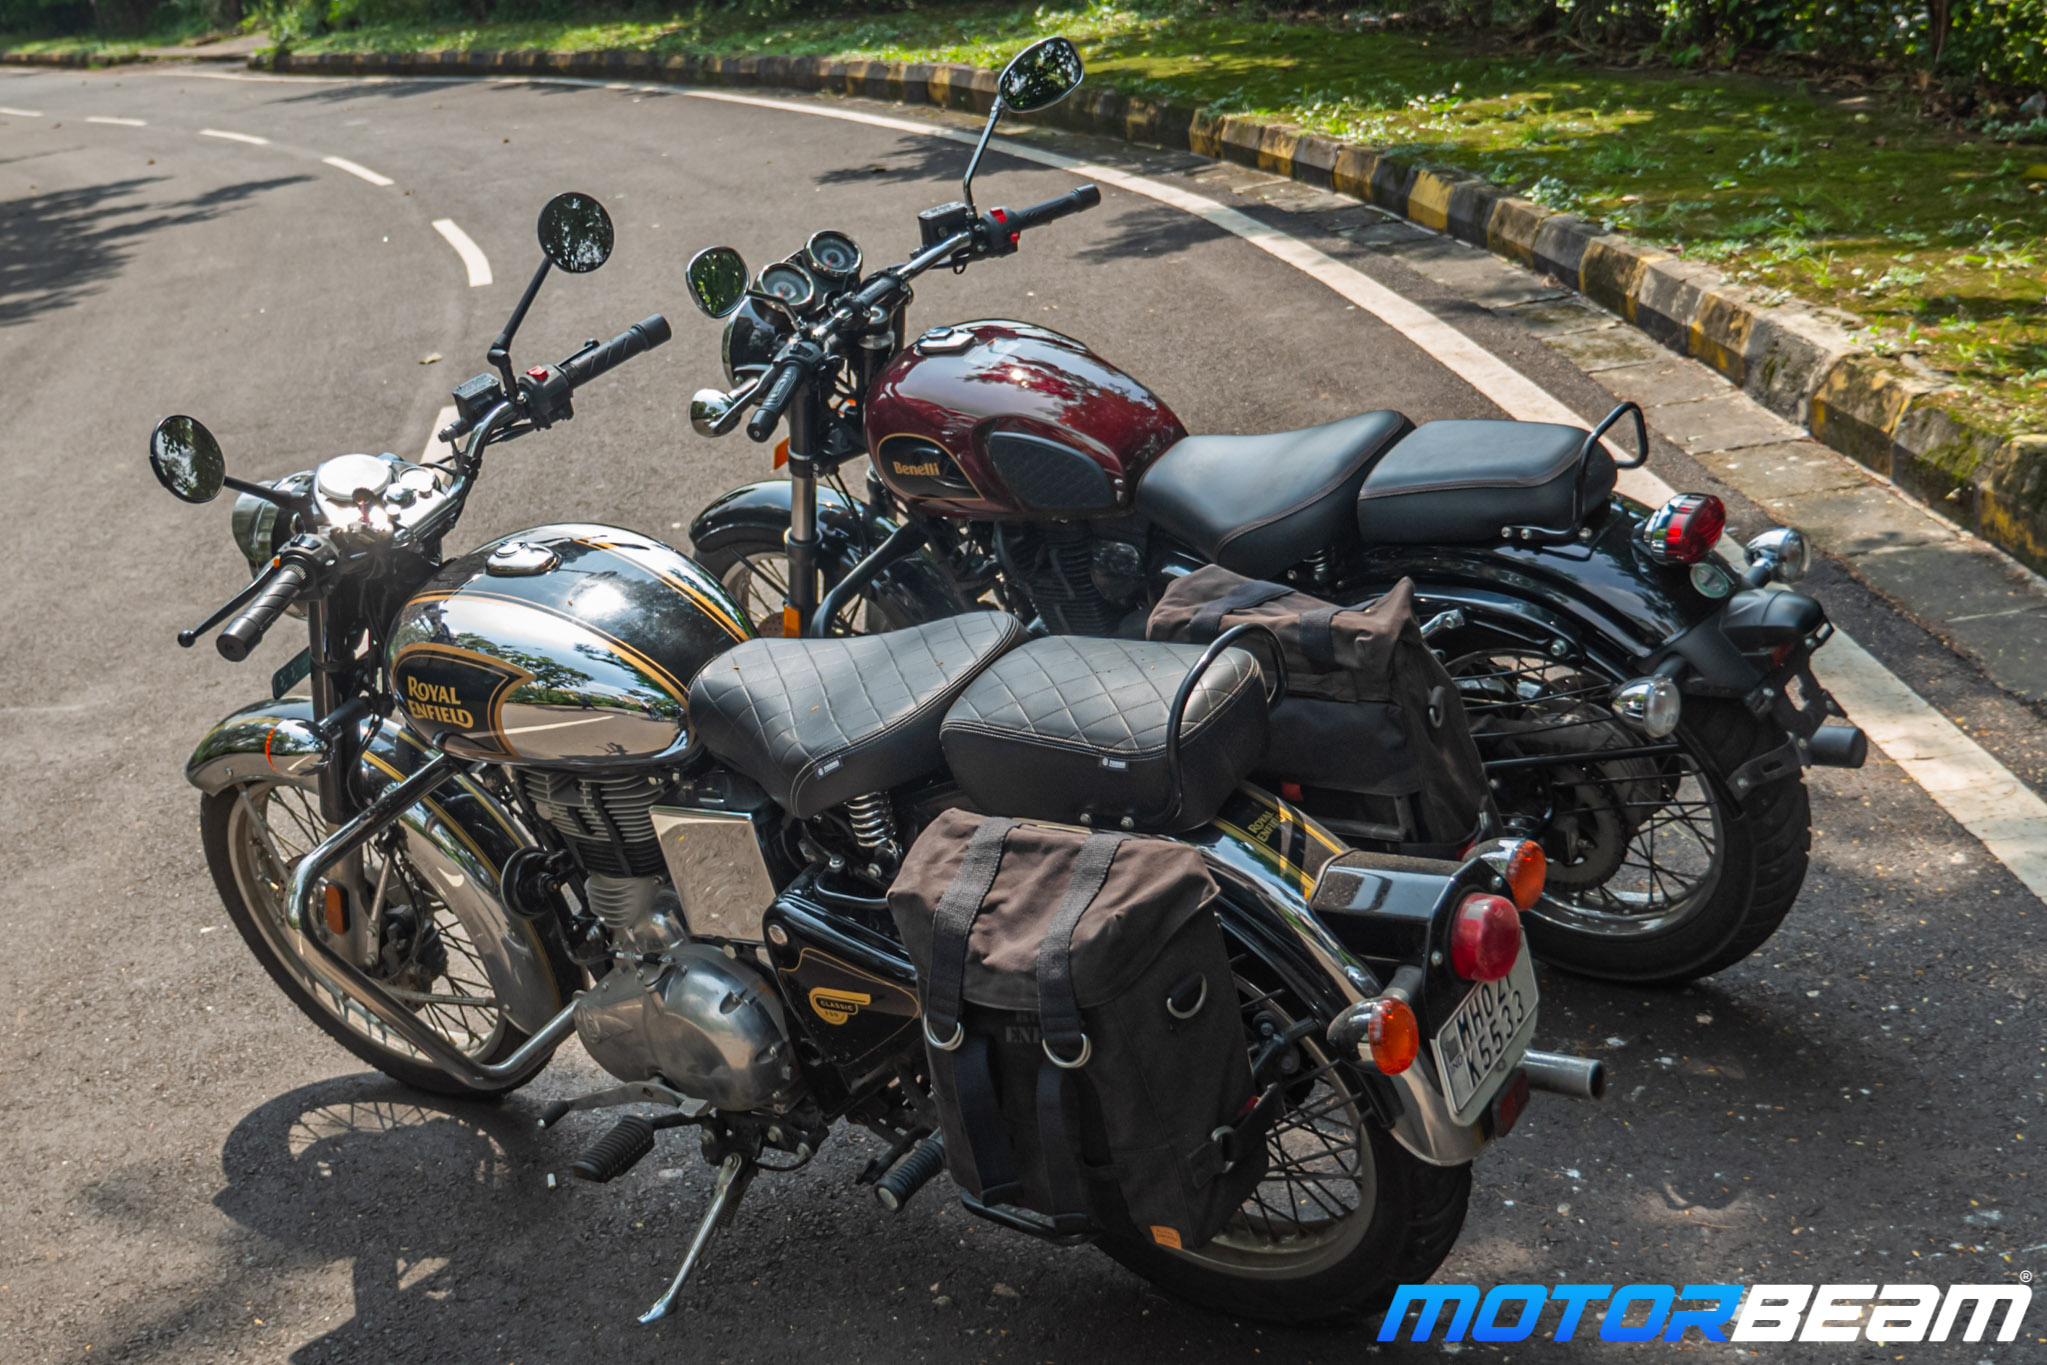 Benelli Imperiale 400 vs Royal Enfield Classic 350 Comparison Review 11